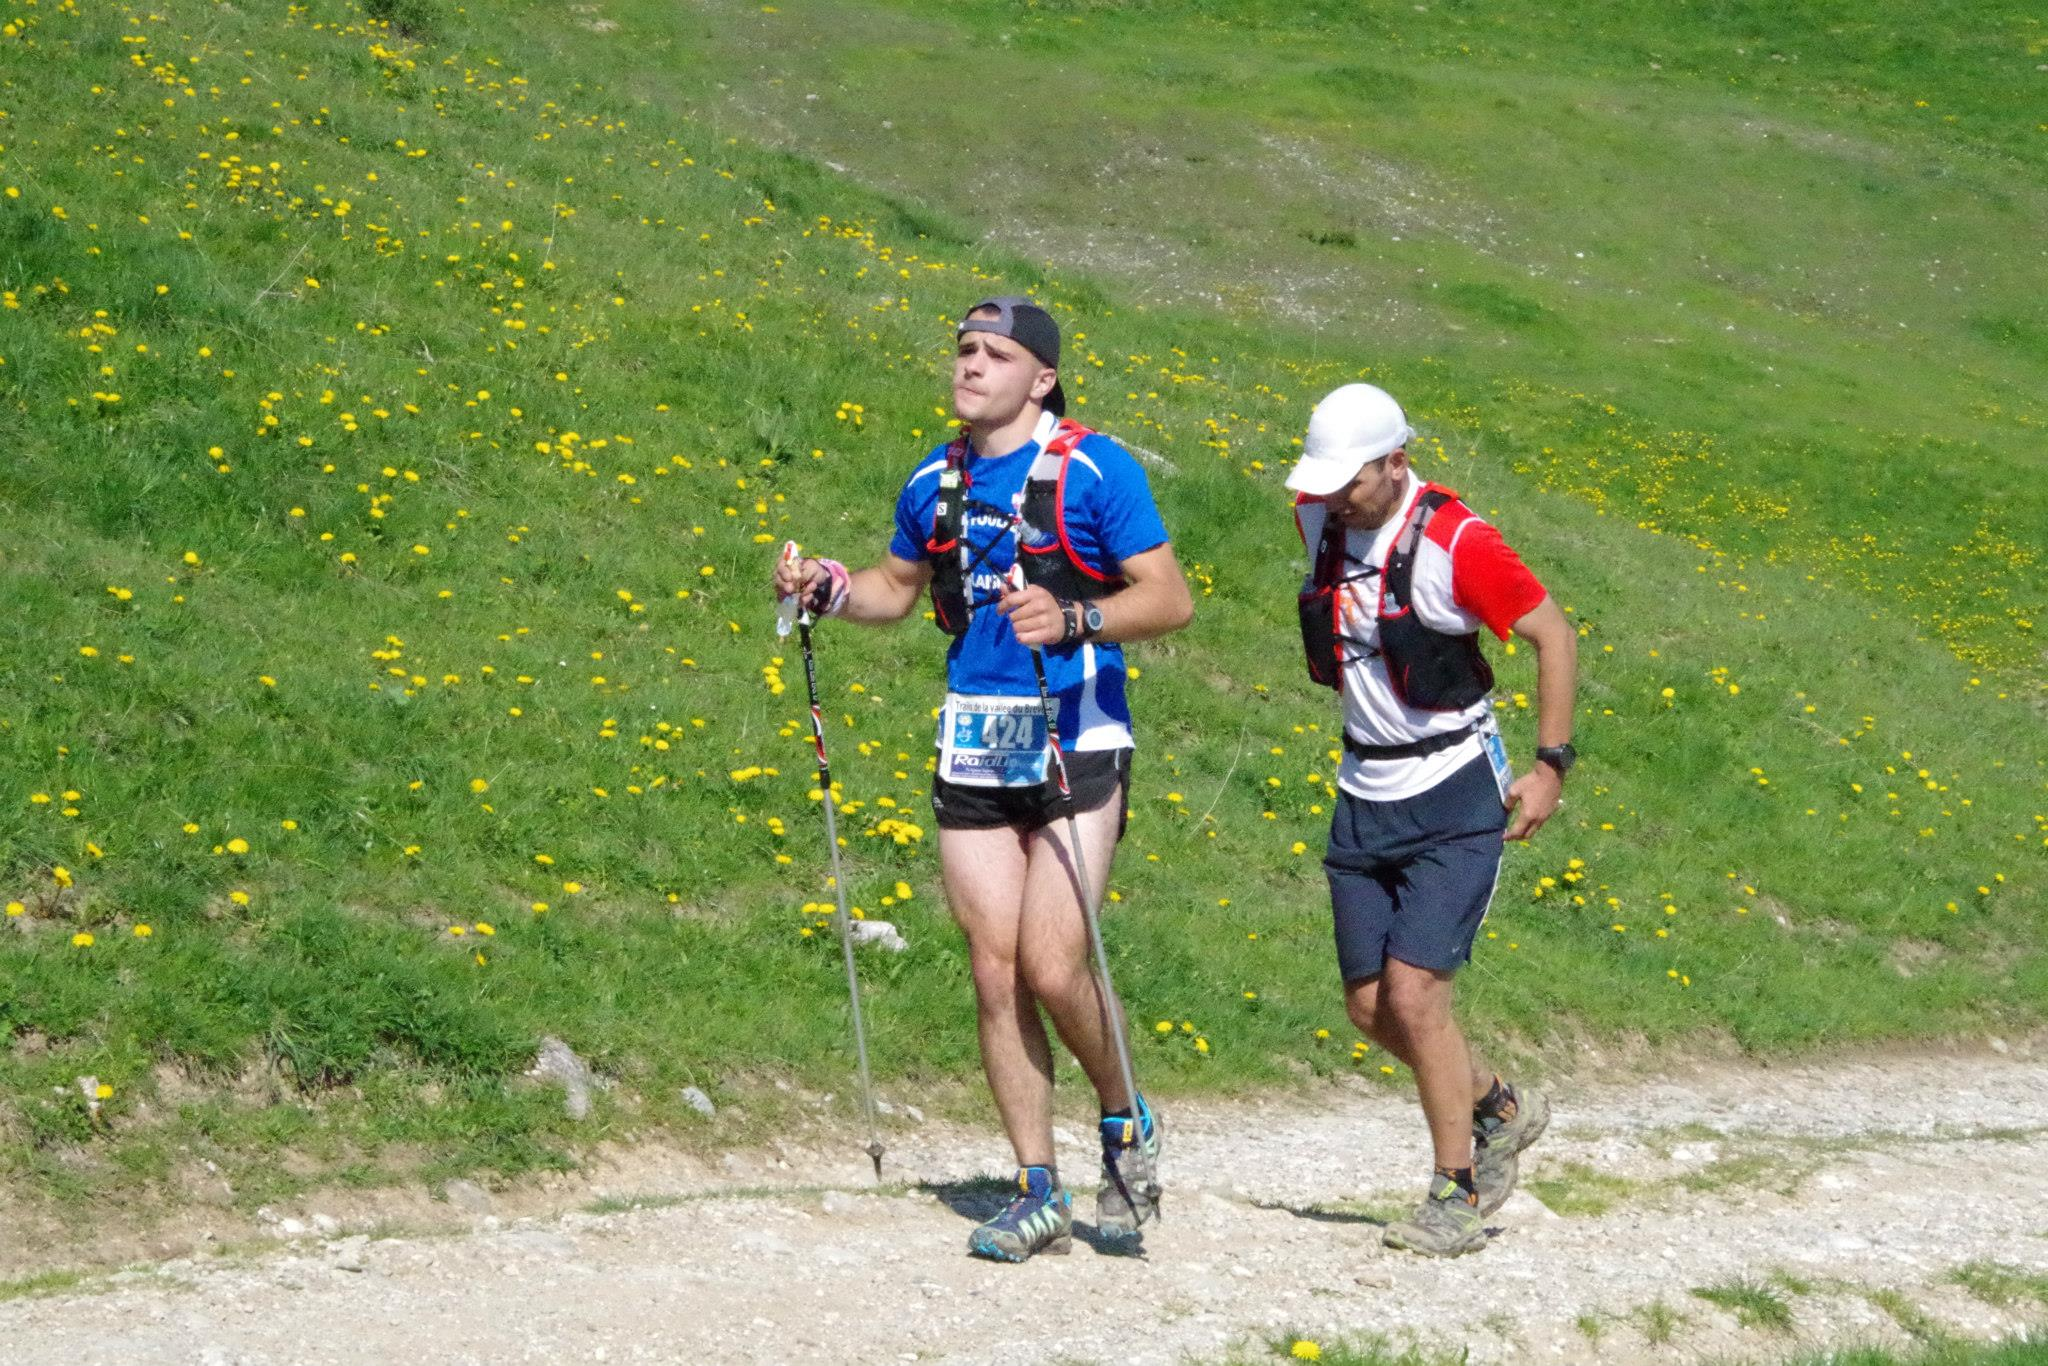 10478066 10153893233917782 1260947533955248618 o - RESULTATS, COMMENTAIRES, PHOTOS ET VIDEO DES TRAILS DE LA VALLEE DU BREVON / 24-05-15